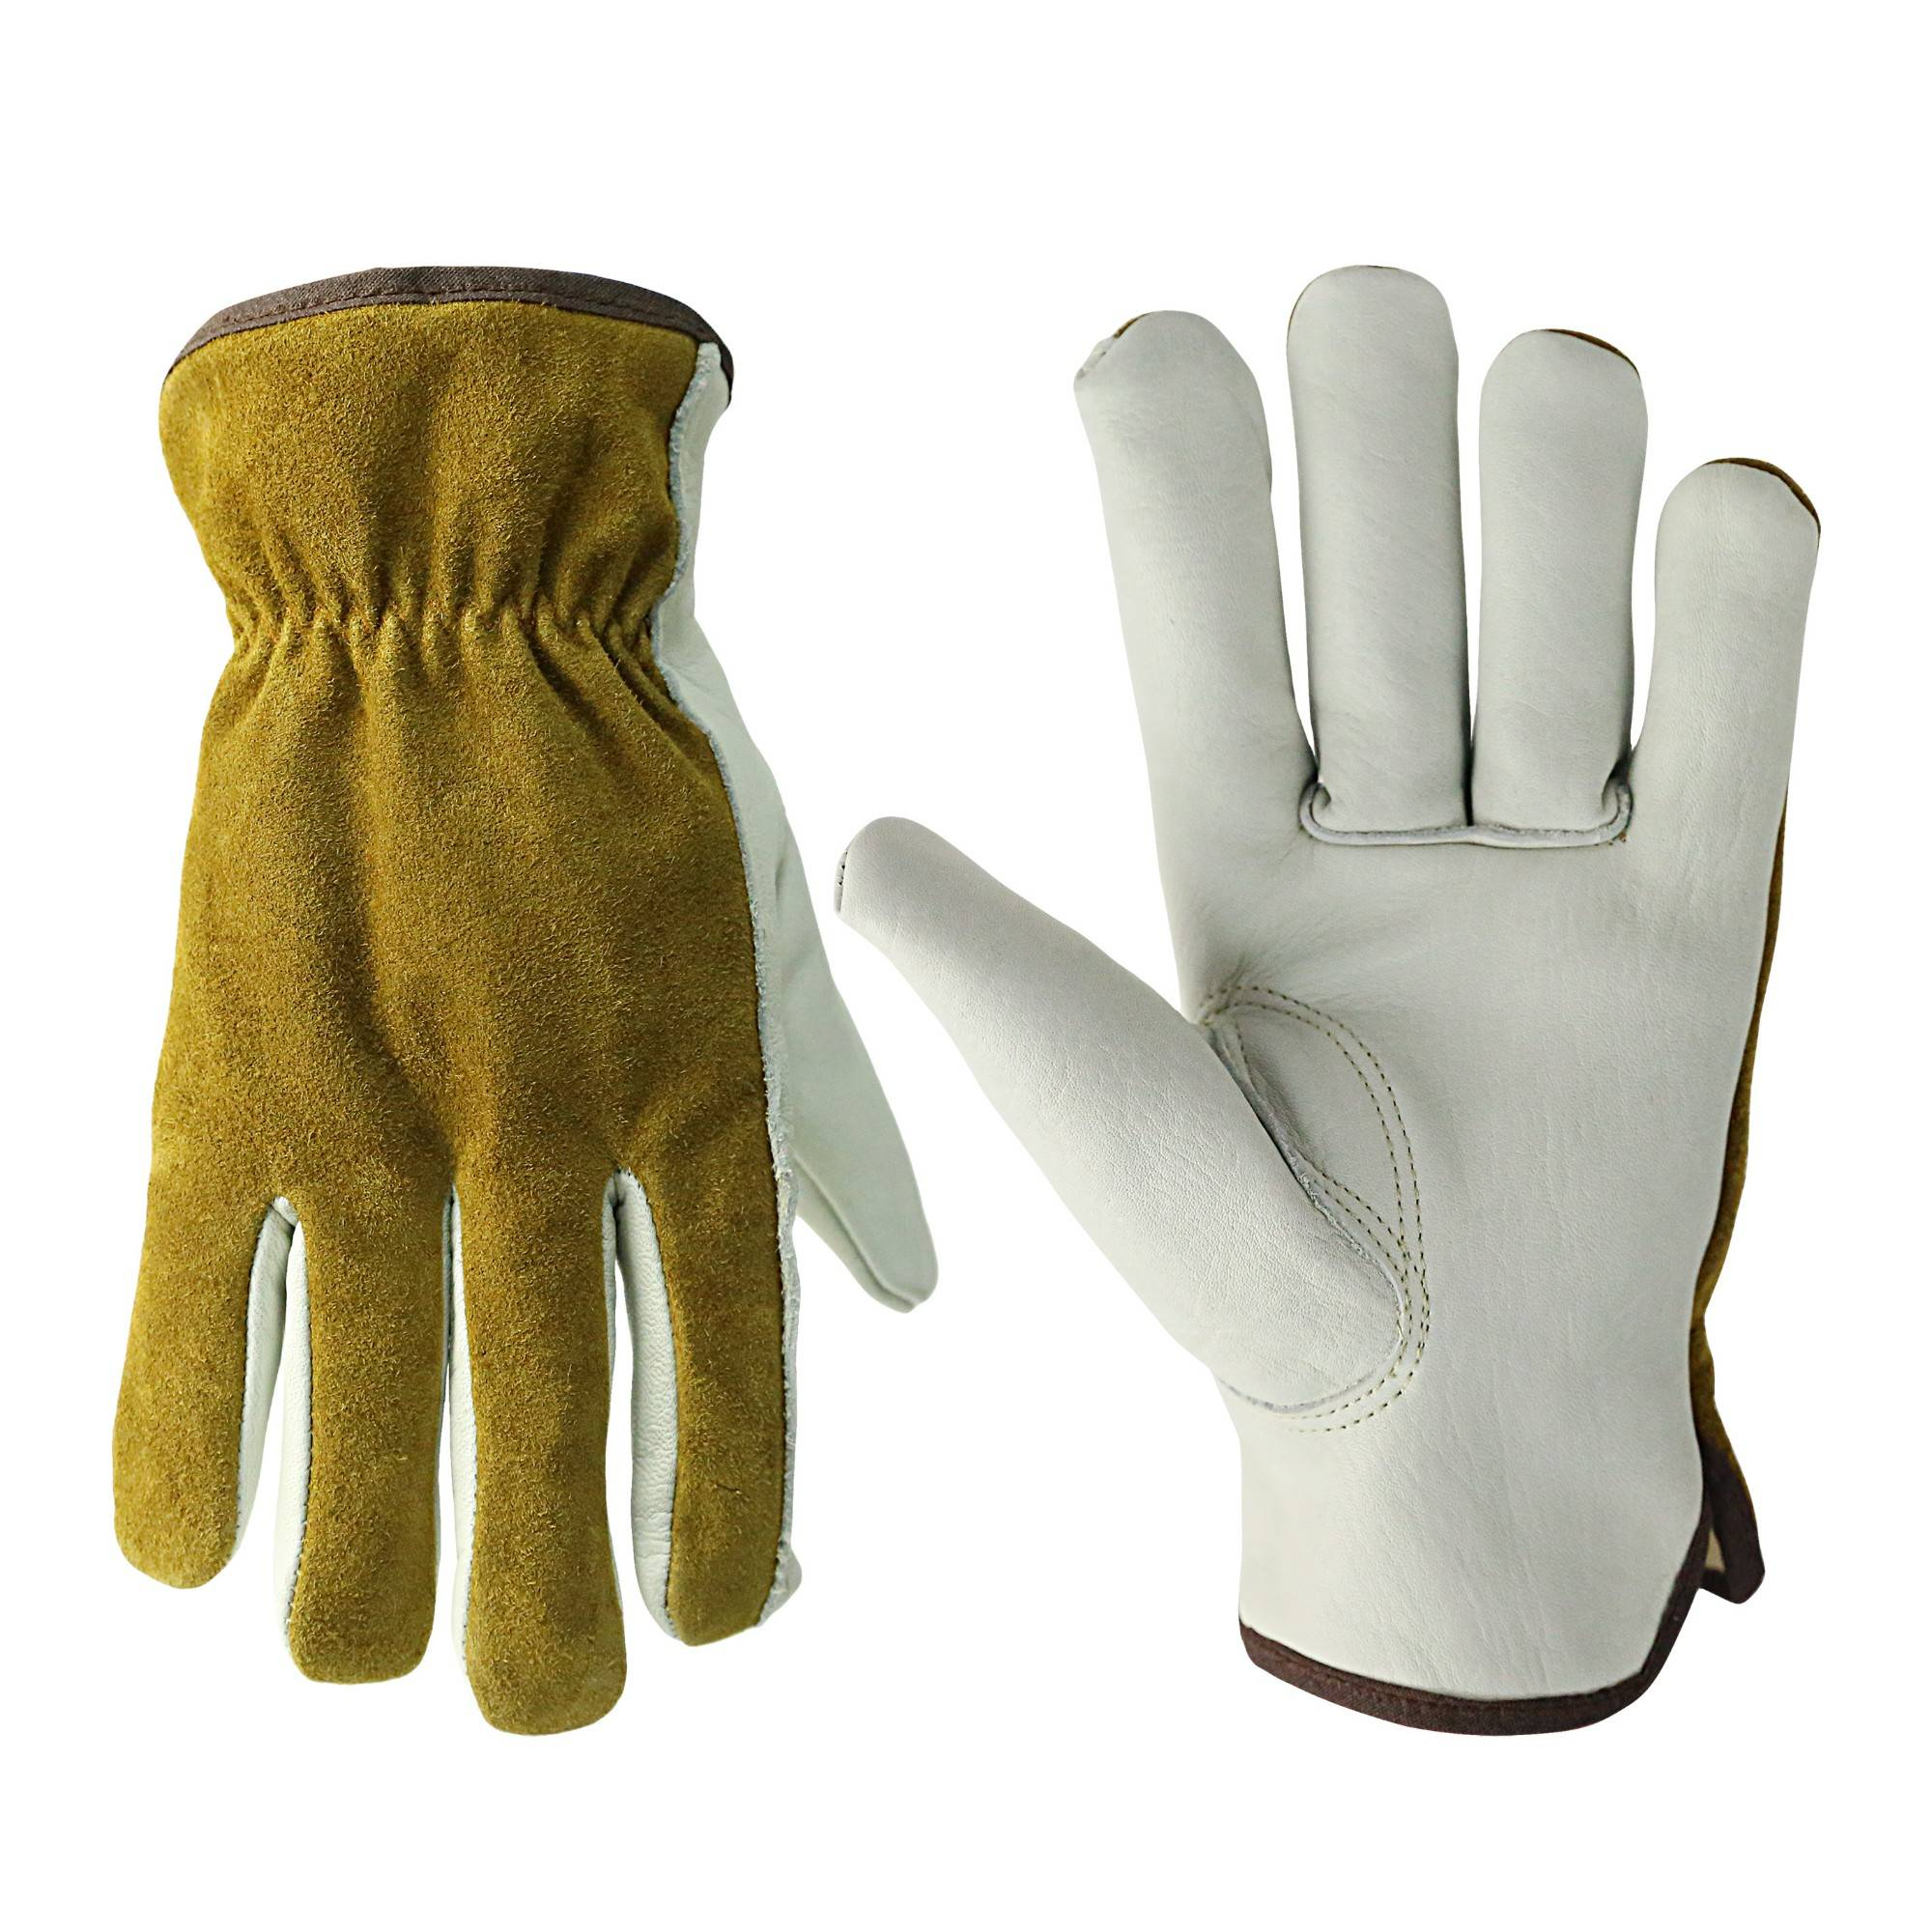 KIM YUAN Work Gloves with Elastic Wrist for Men&Women-Good Grip&Flexible for Riding/Truck Driving/Warehouse/Gardening/Farming